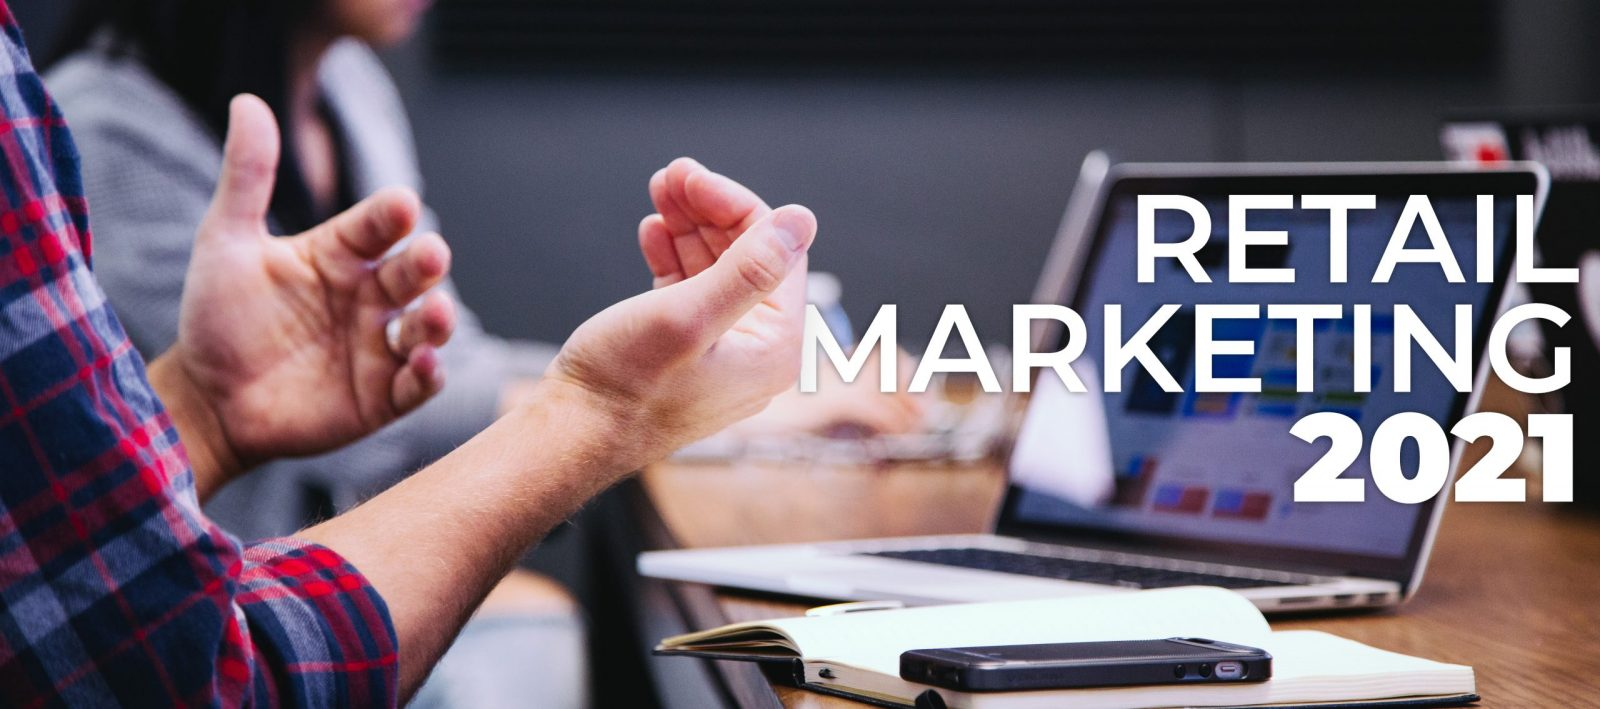 Retail marketing tips for 2021